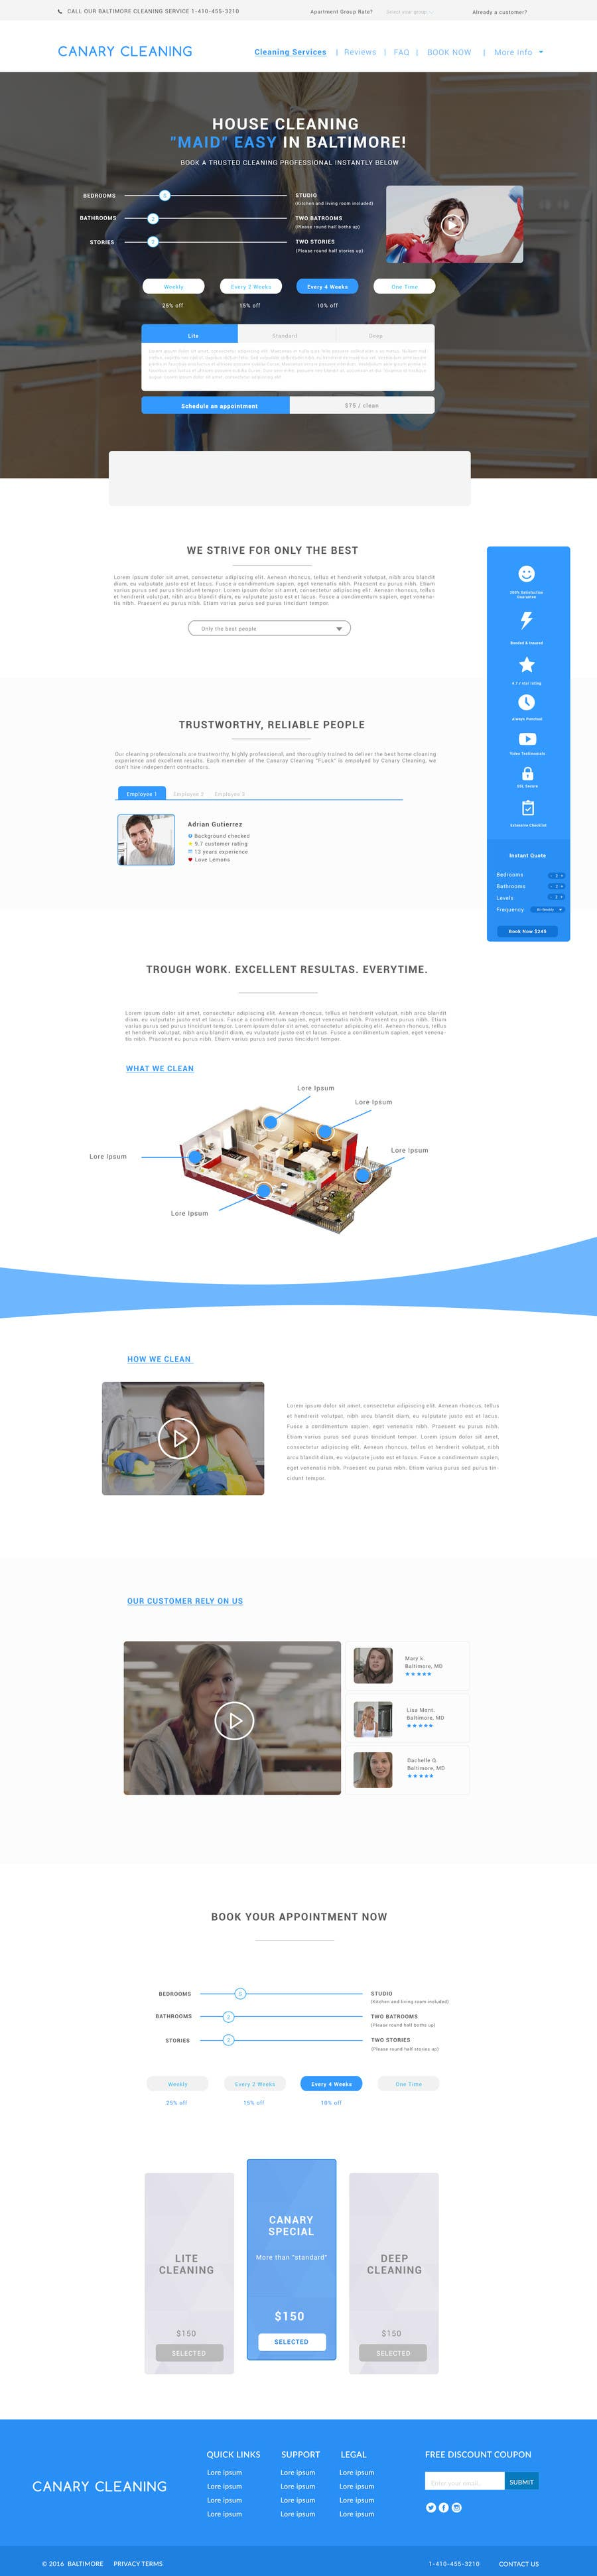 design a website mockup for a new cleaning service lancer 6 for design a website mockup for a new cleaning service by ohmyfunsite